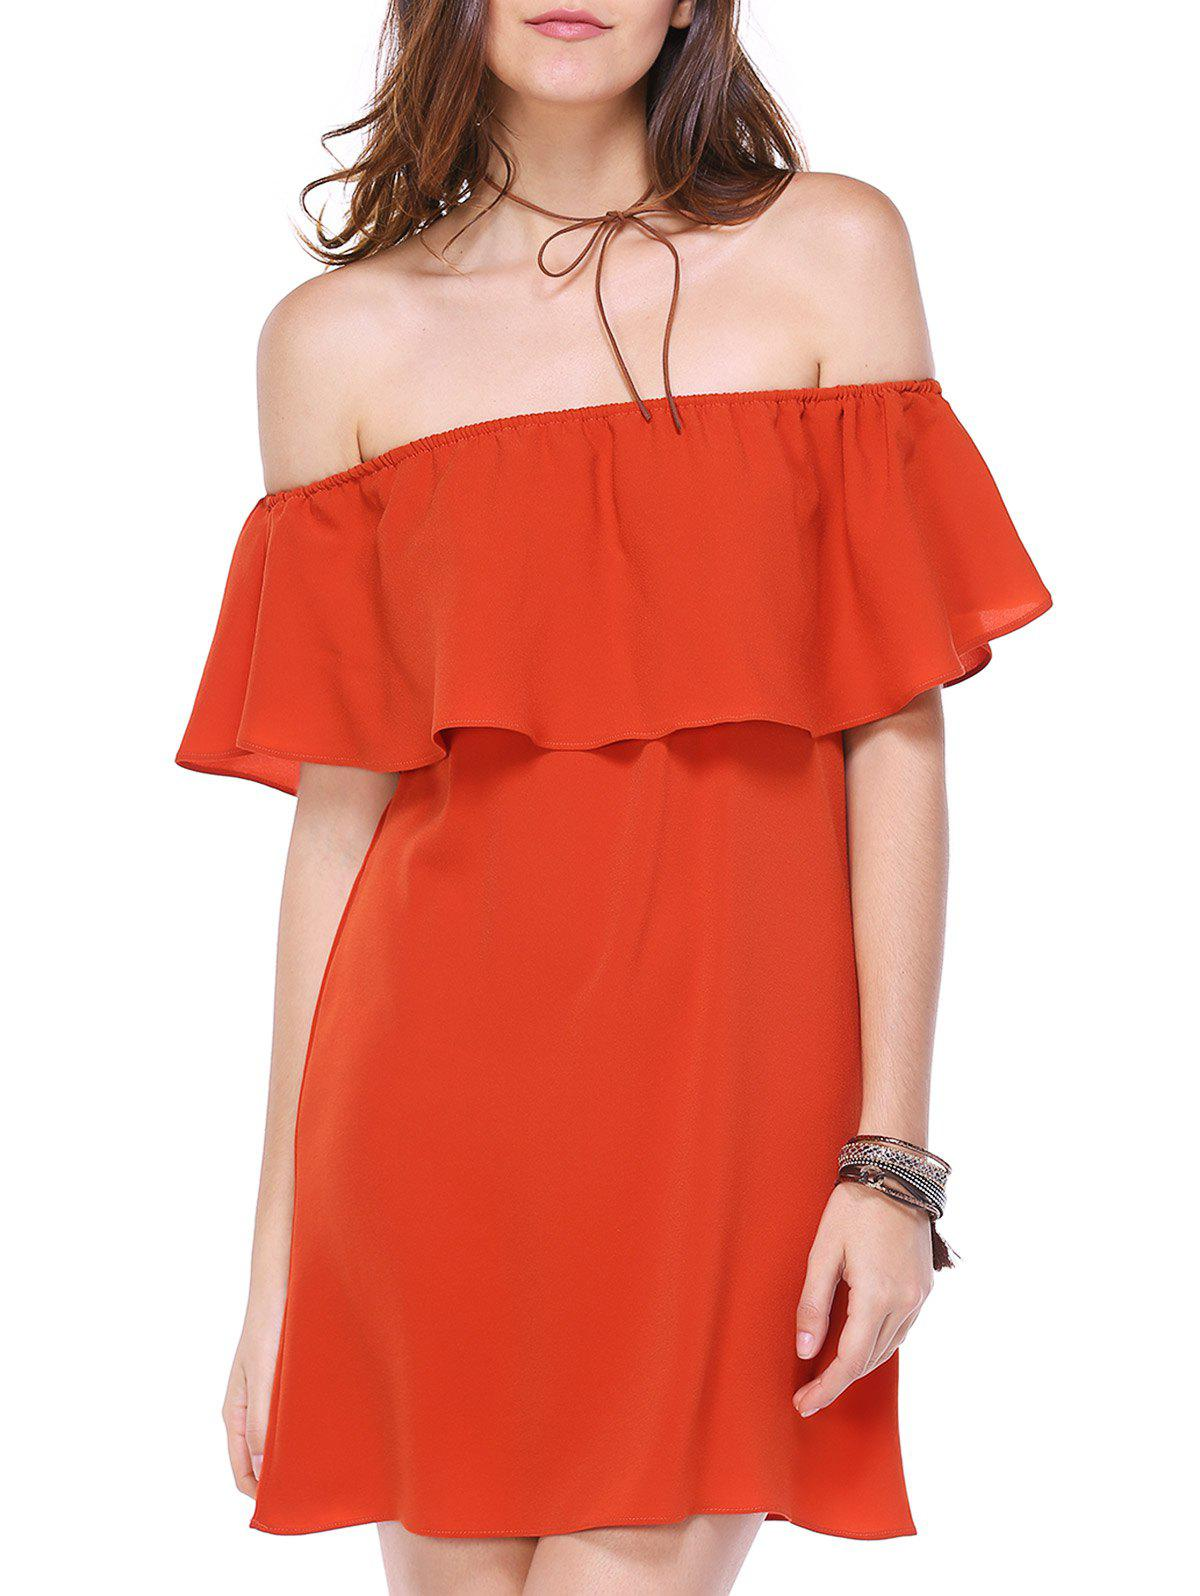 Off The Shoulder Flounce Alluring Women's Chiffon Dress - JACINTH L